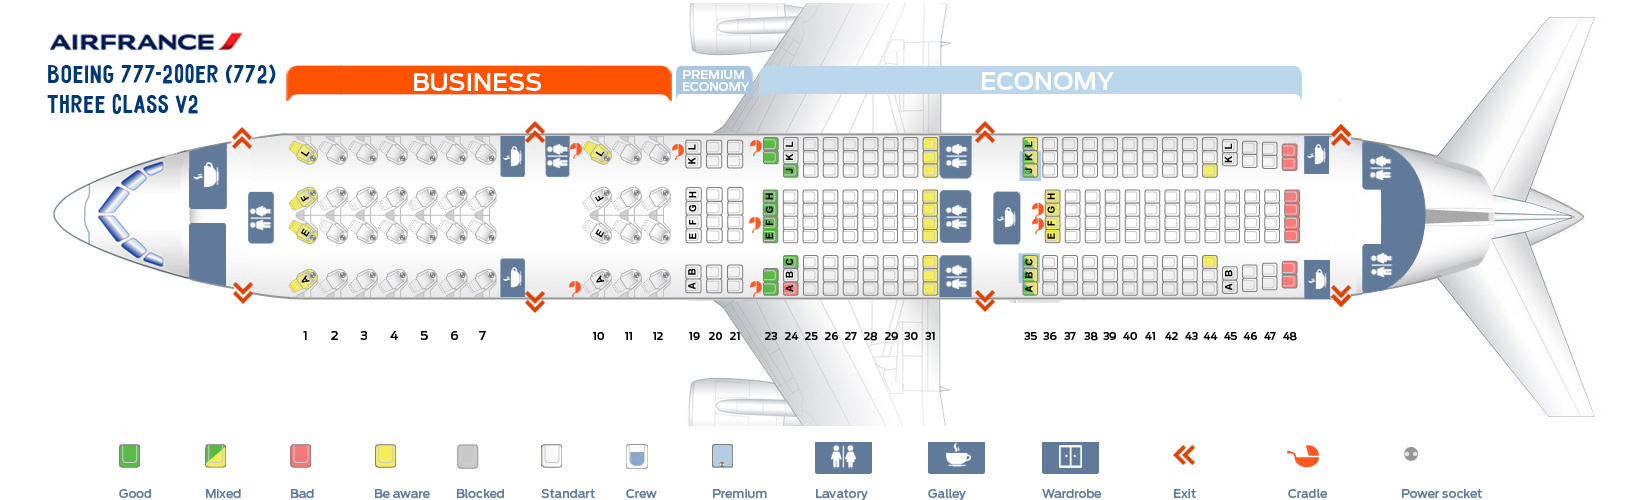 Seat Map Boeing 777-200ER Three Class V2 AirFrance